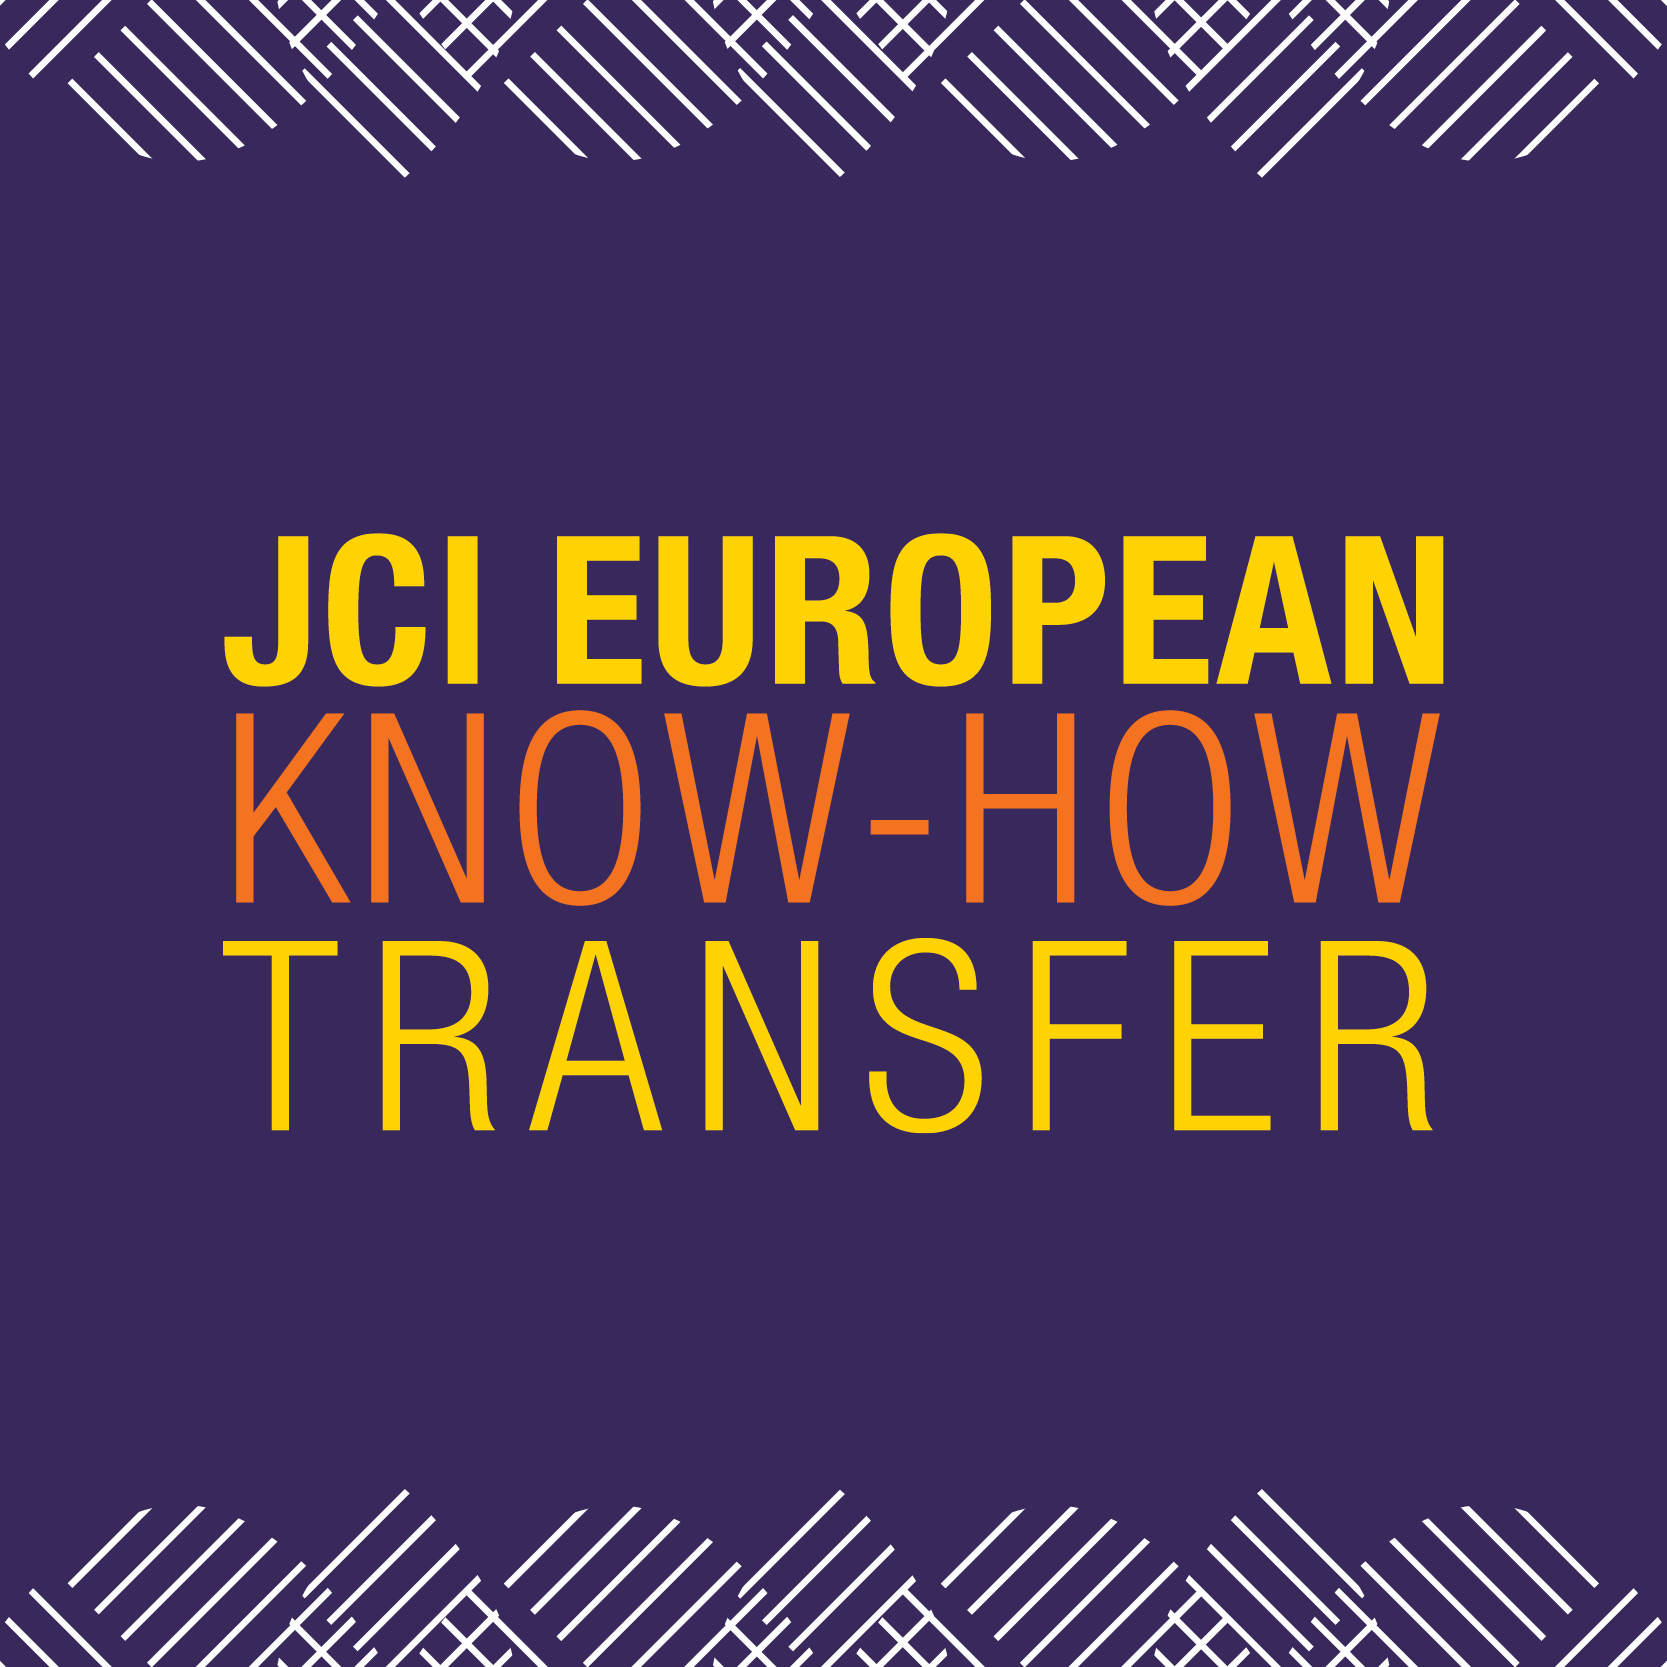 Our Projects - JCI The Heart Of Europe